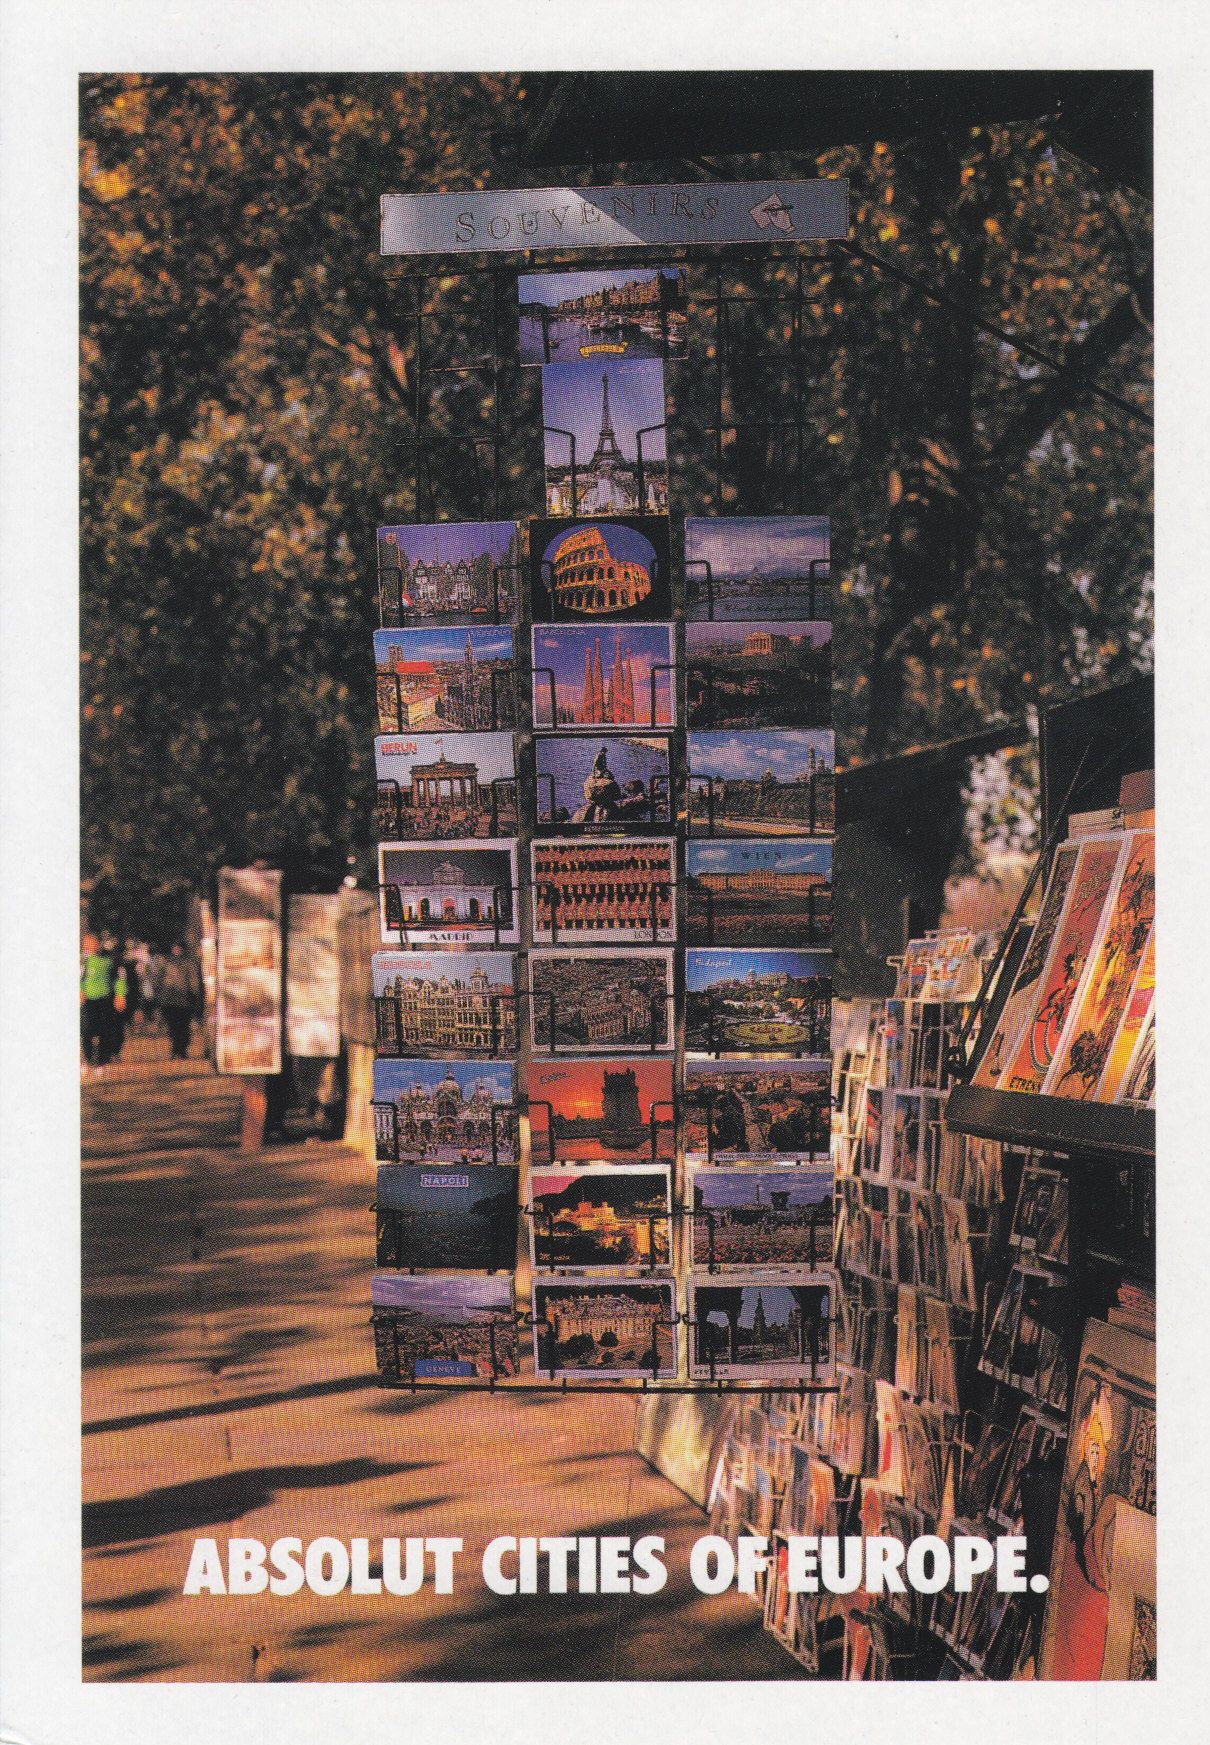 Absolut Cities of Europe - # 249 - Promocard - Italy - # 4.378